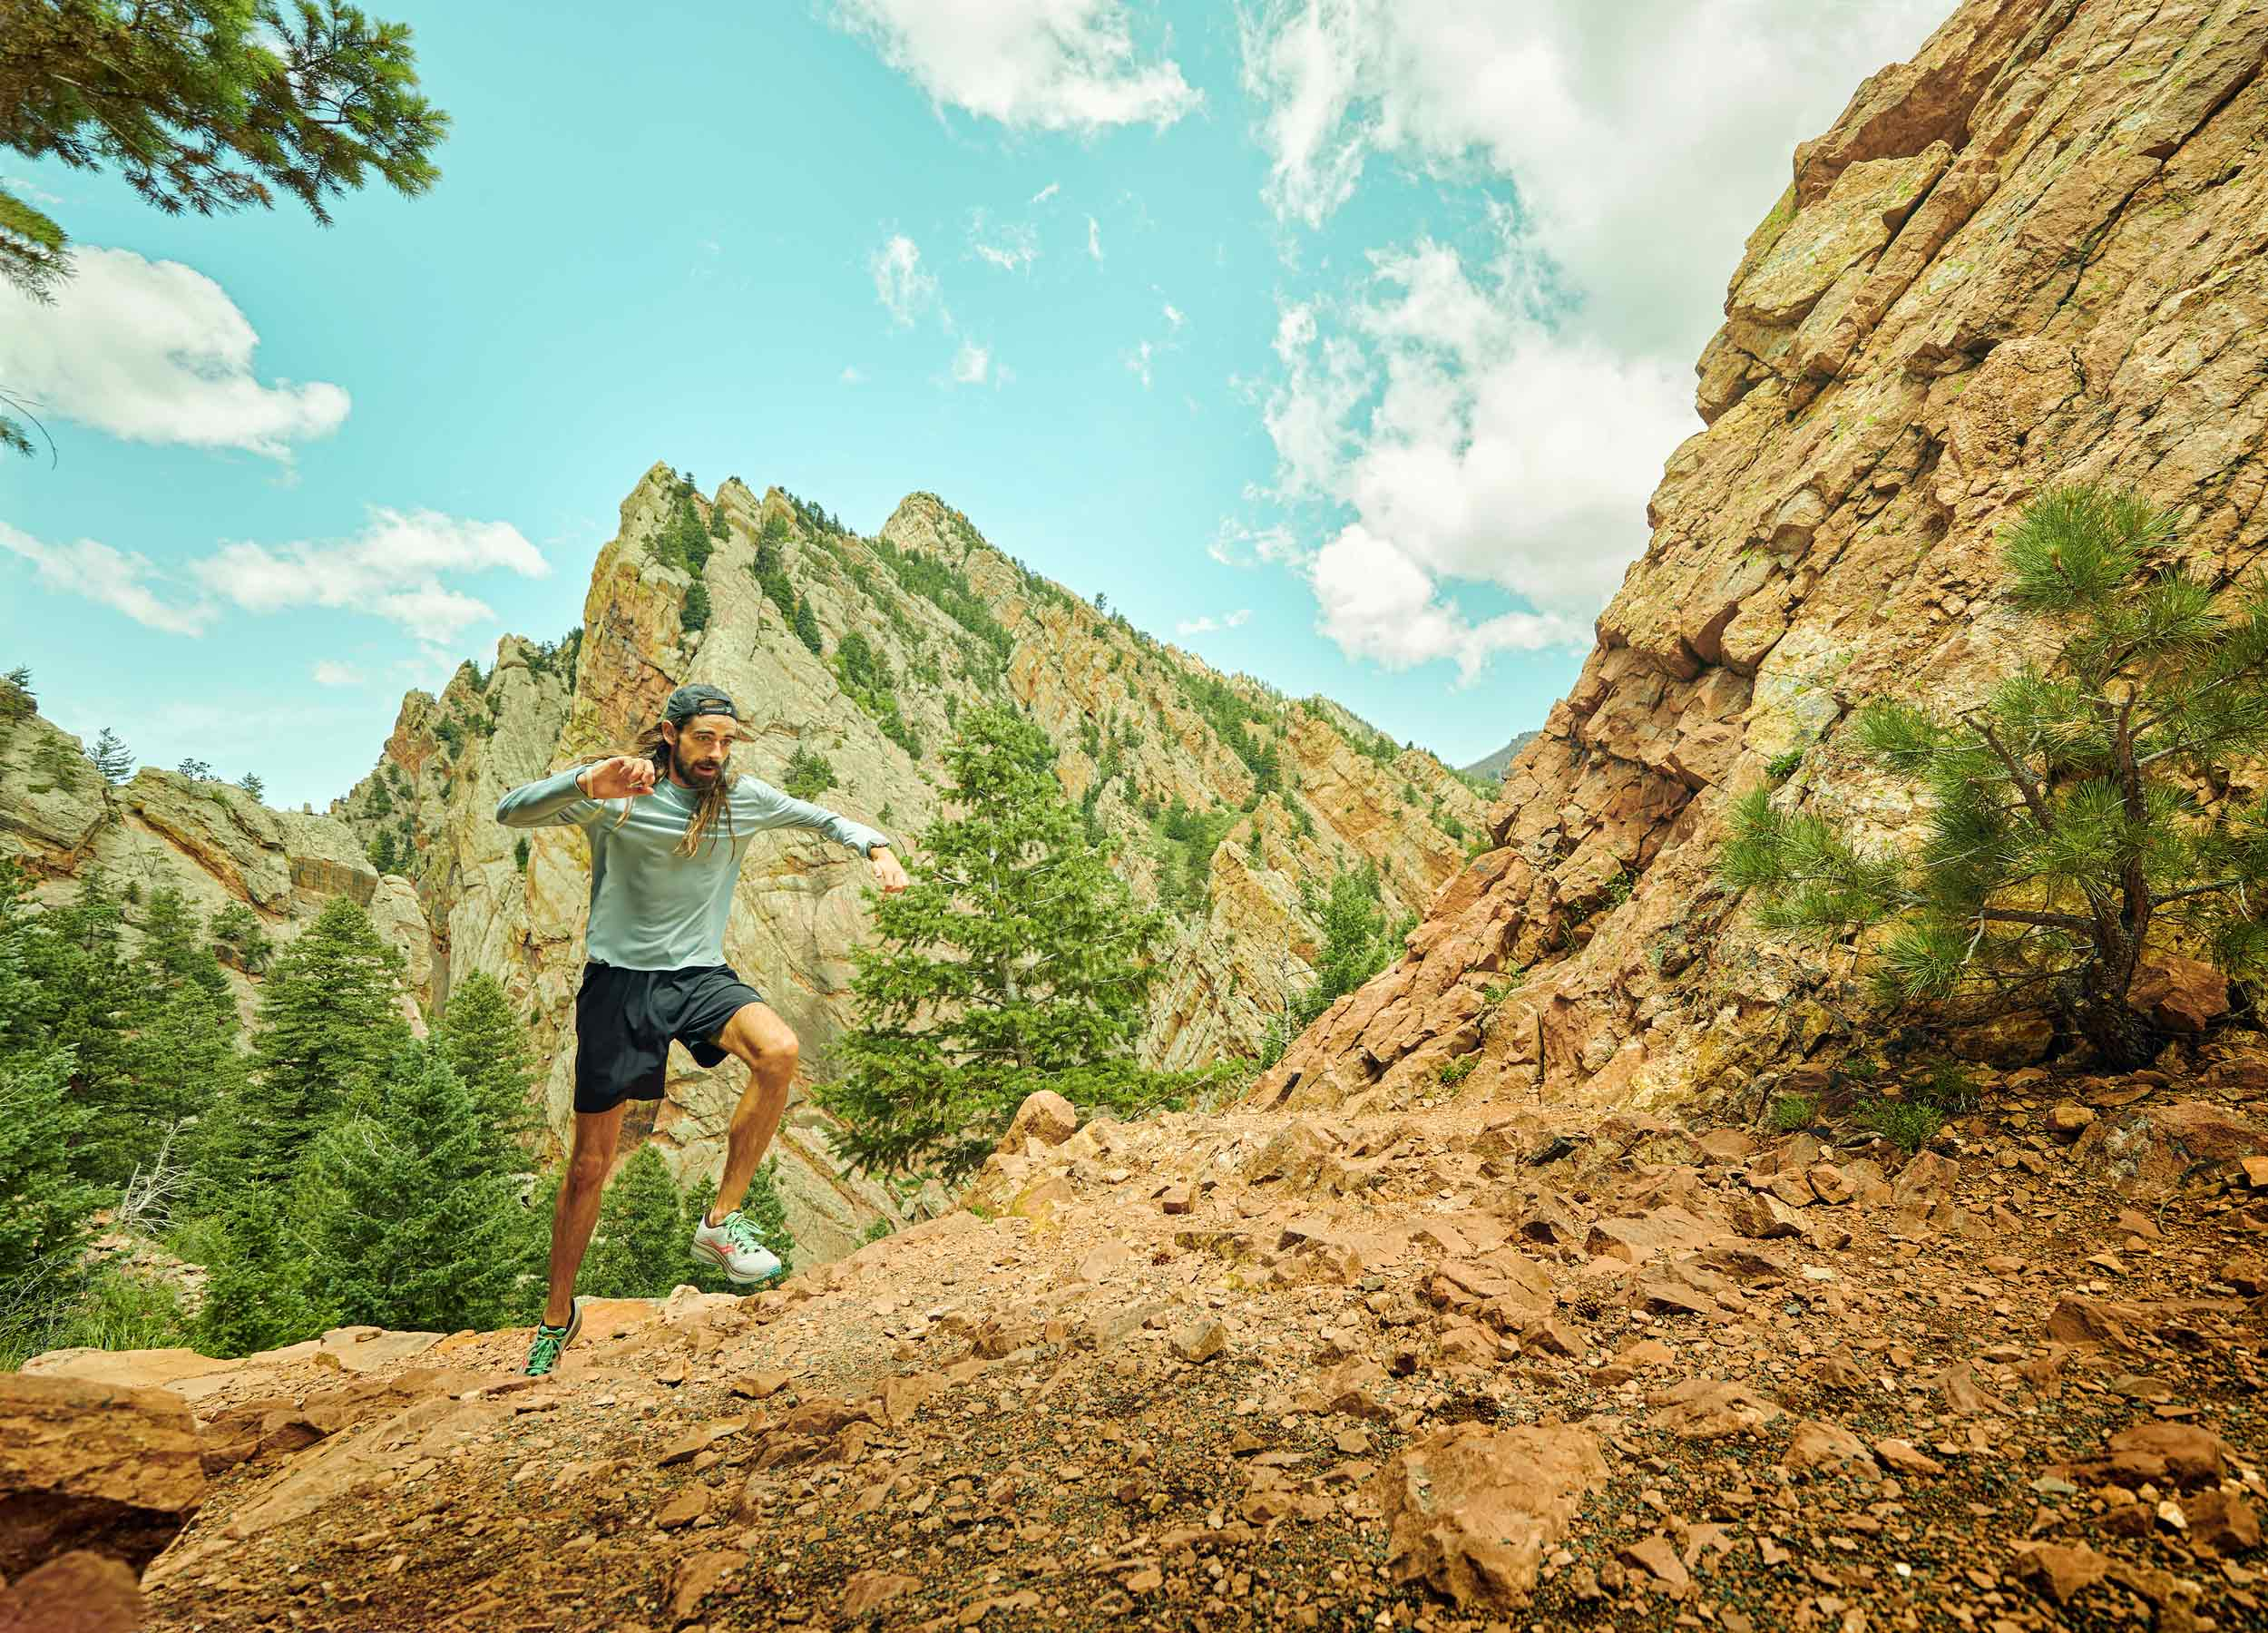 060920_maguire_saucony_trail_canyonTR_1506